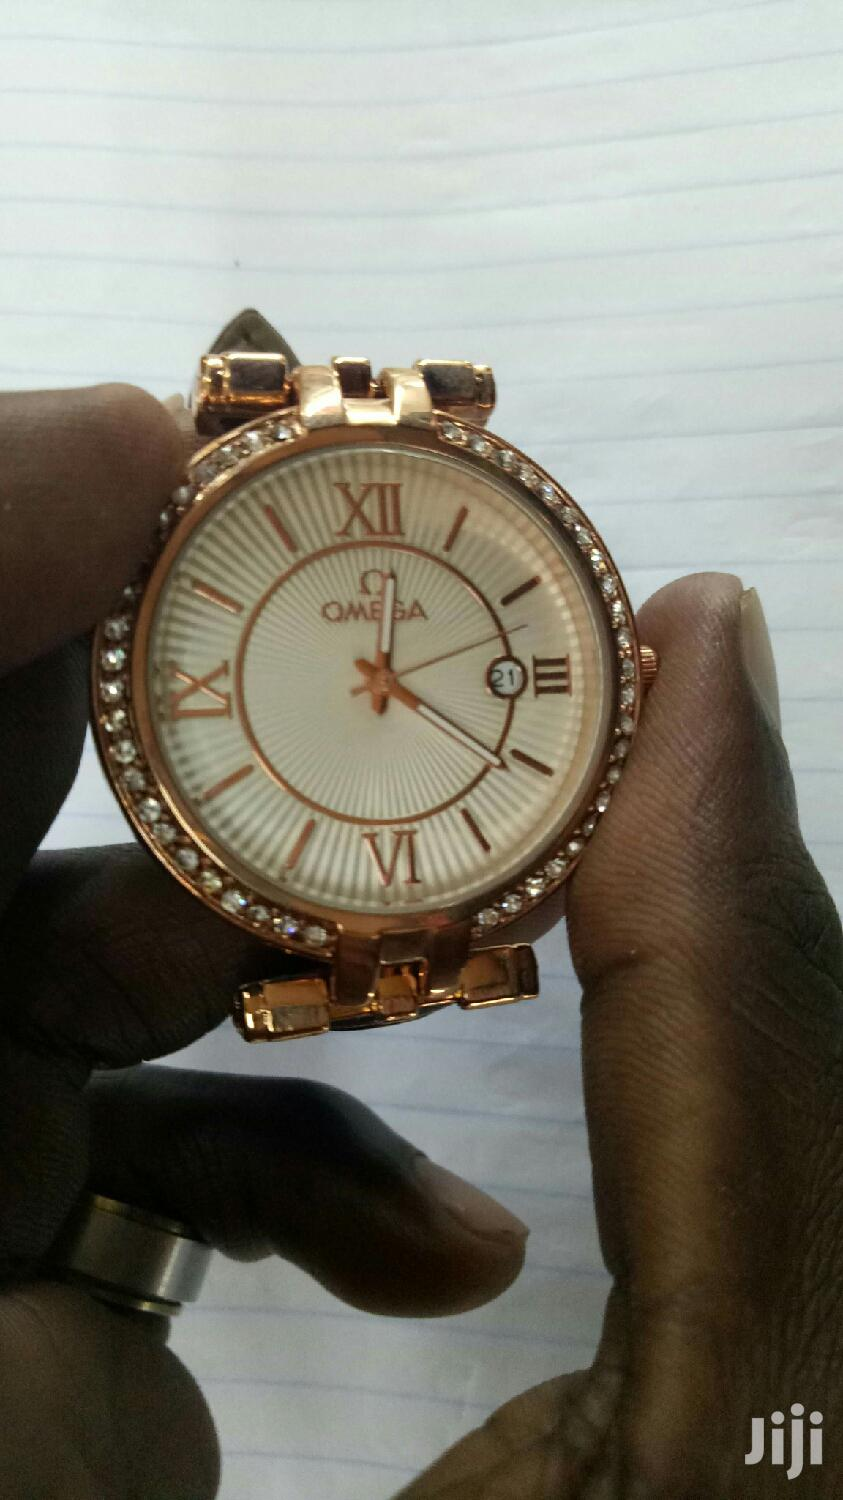 Omega Watches For Ladies | Watches for sale in Nairobi Central, Nairobi, Kenya